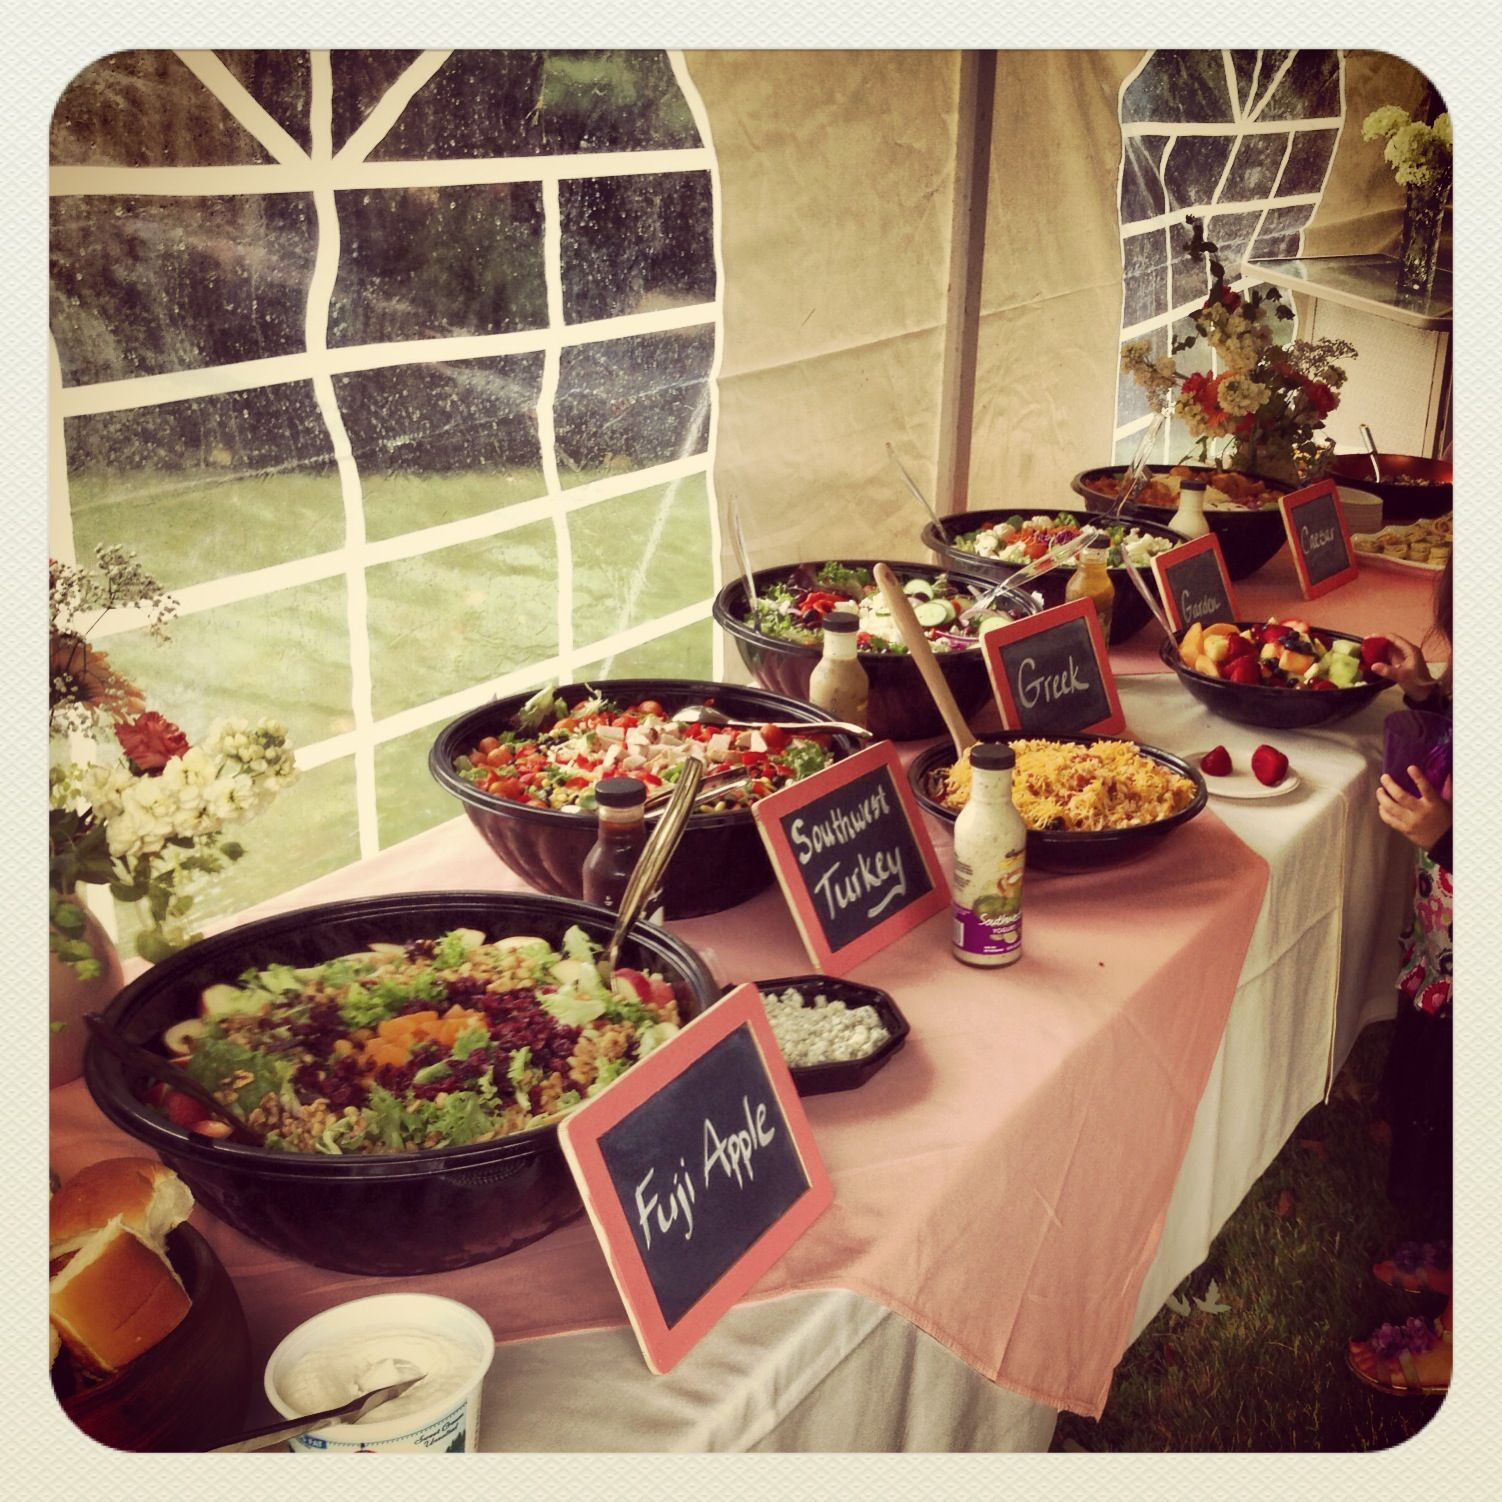 Summer Wedding Buffet Menu Ideas: Wedding Shower Salad Buffet. Chalkboard Signs. Wegmans